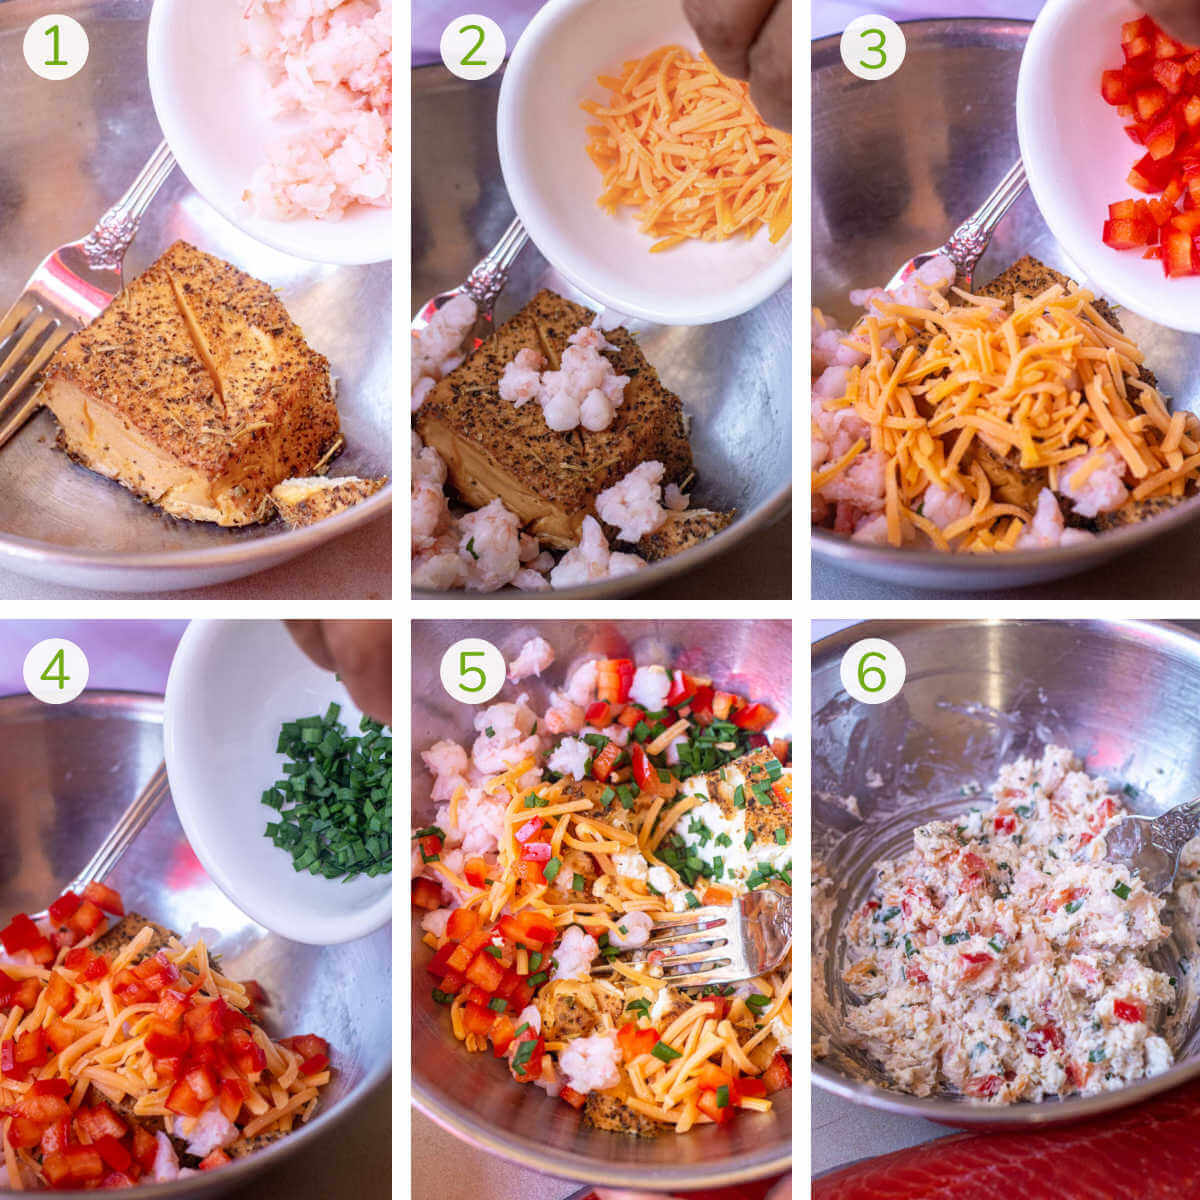 process photos showing how to mix the ingredients and turn it into the smoked cream cheese filling.